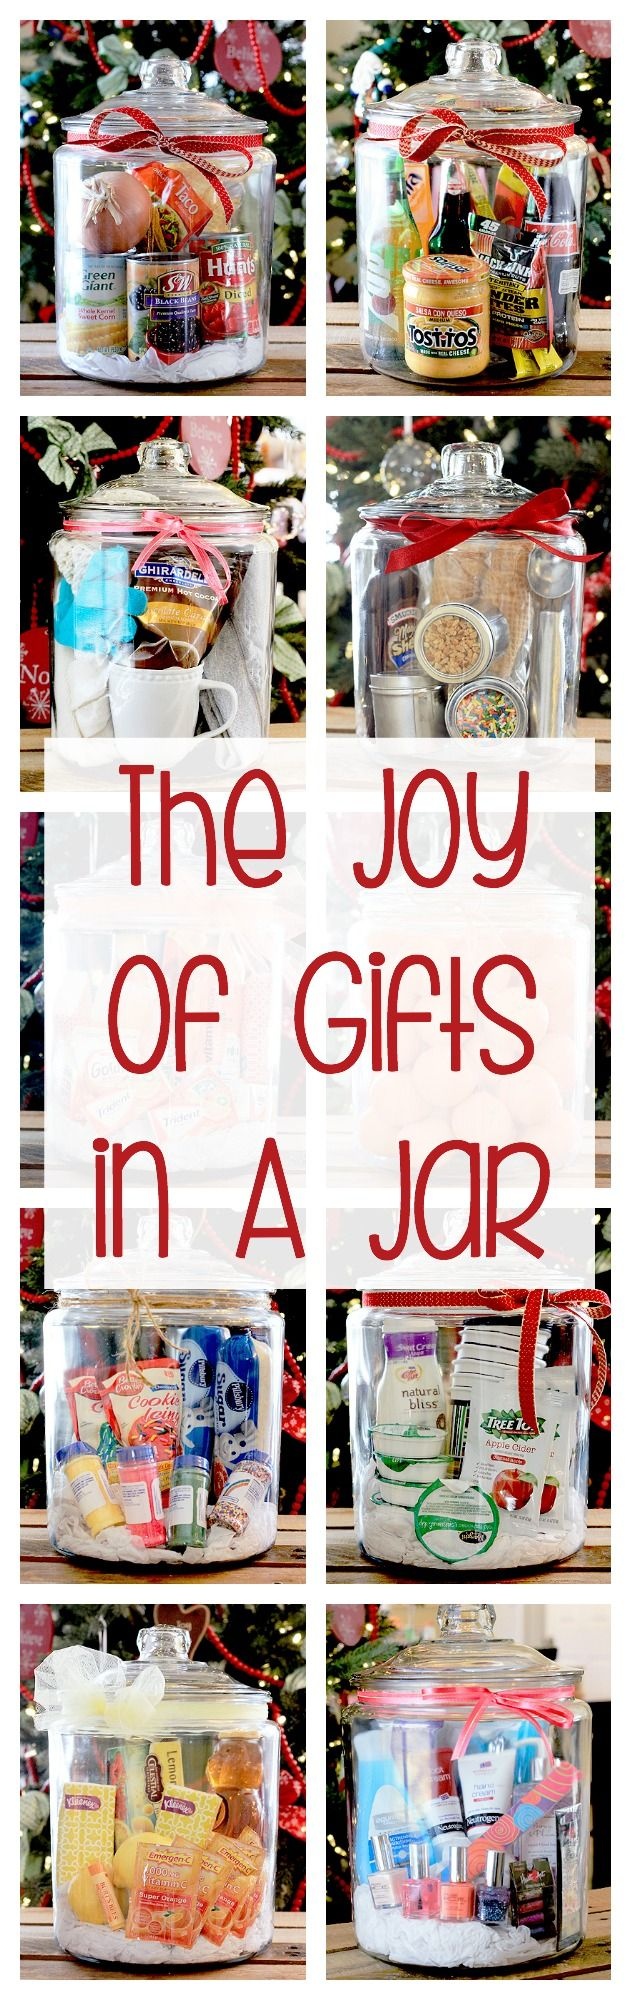 Gifts in a Jar are festive, customizable and fun to put together!